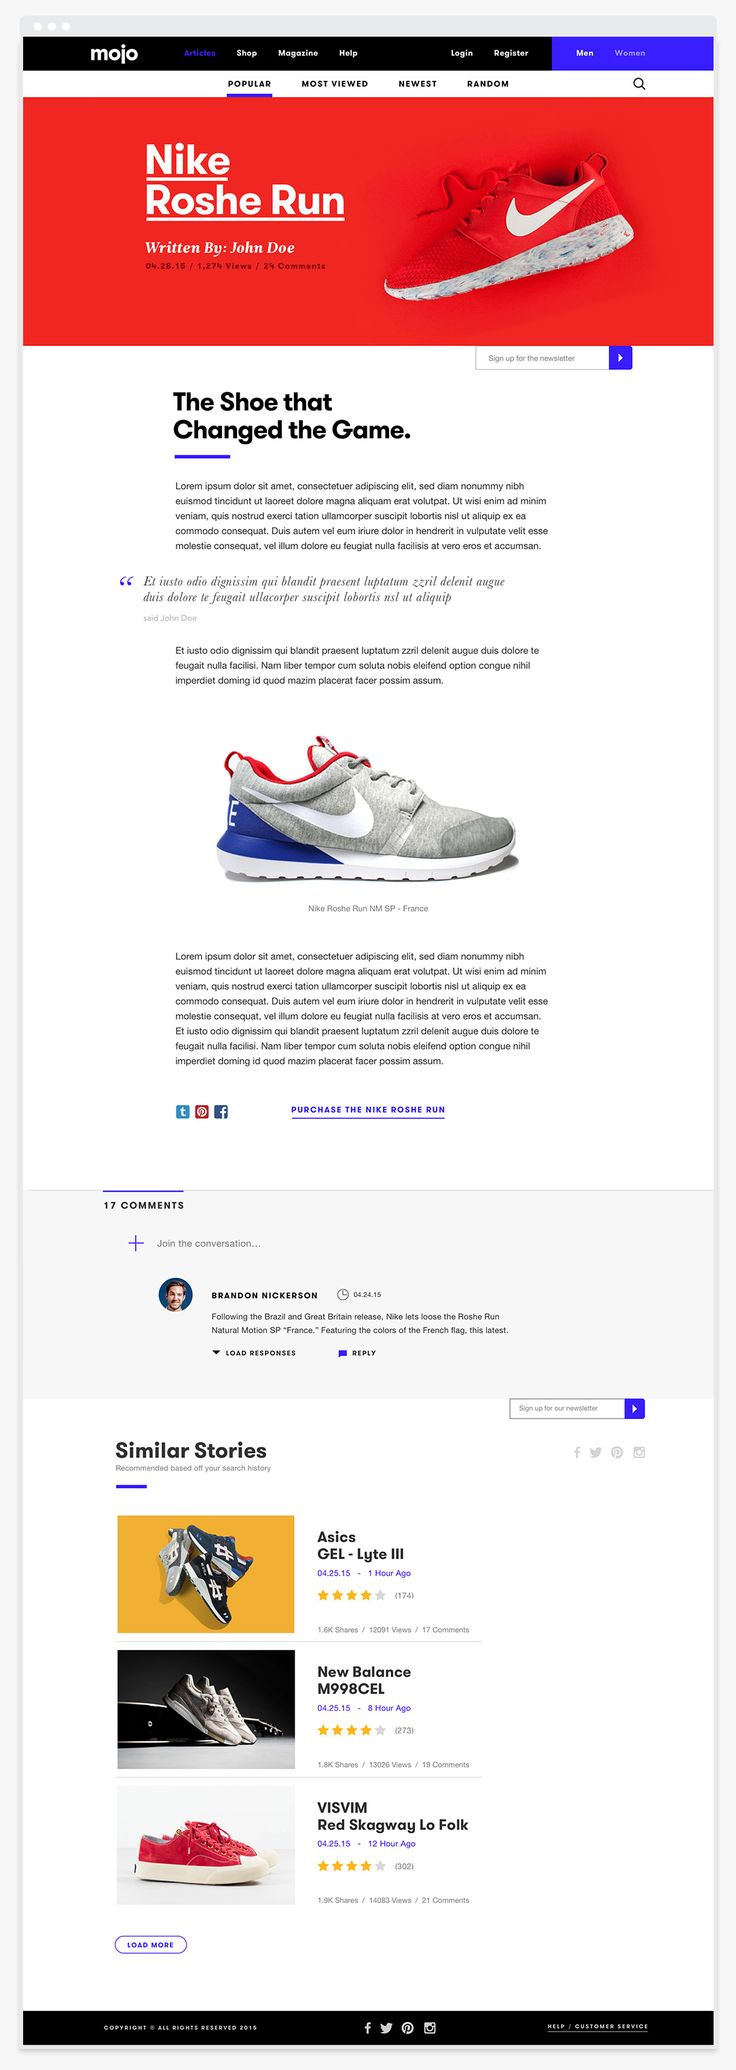 Mojo Footwear Blog on Behance